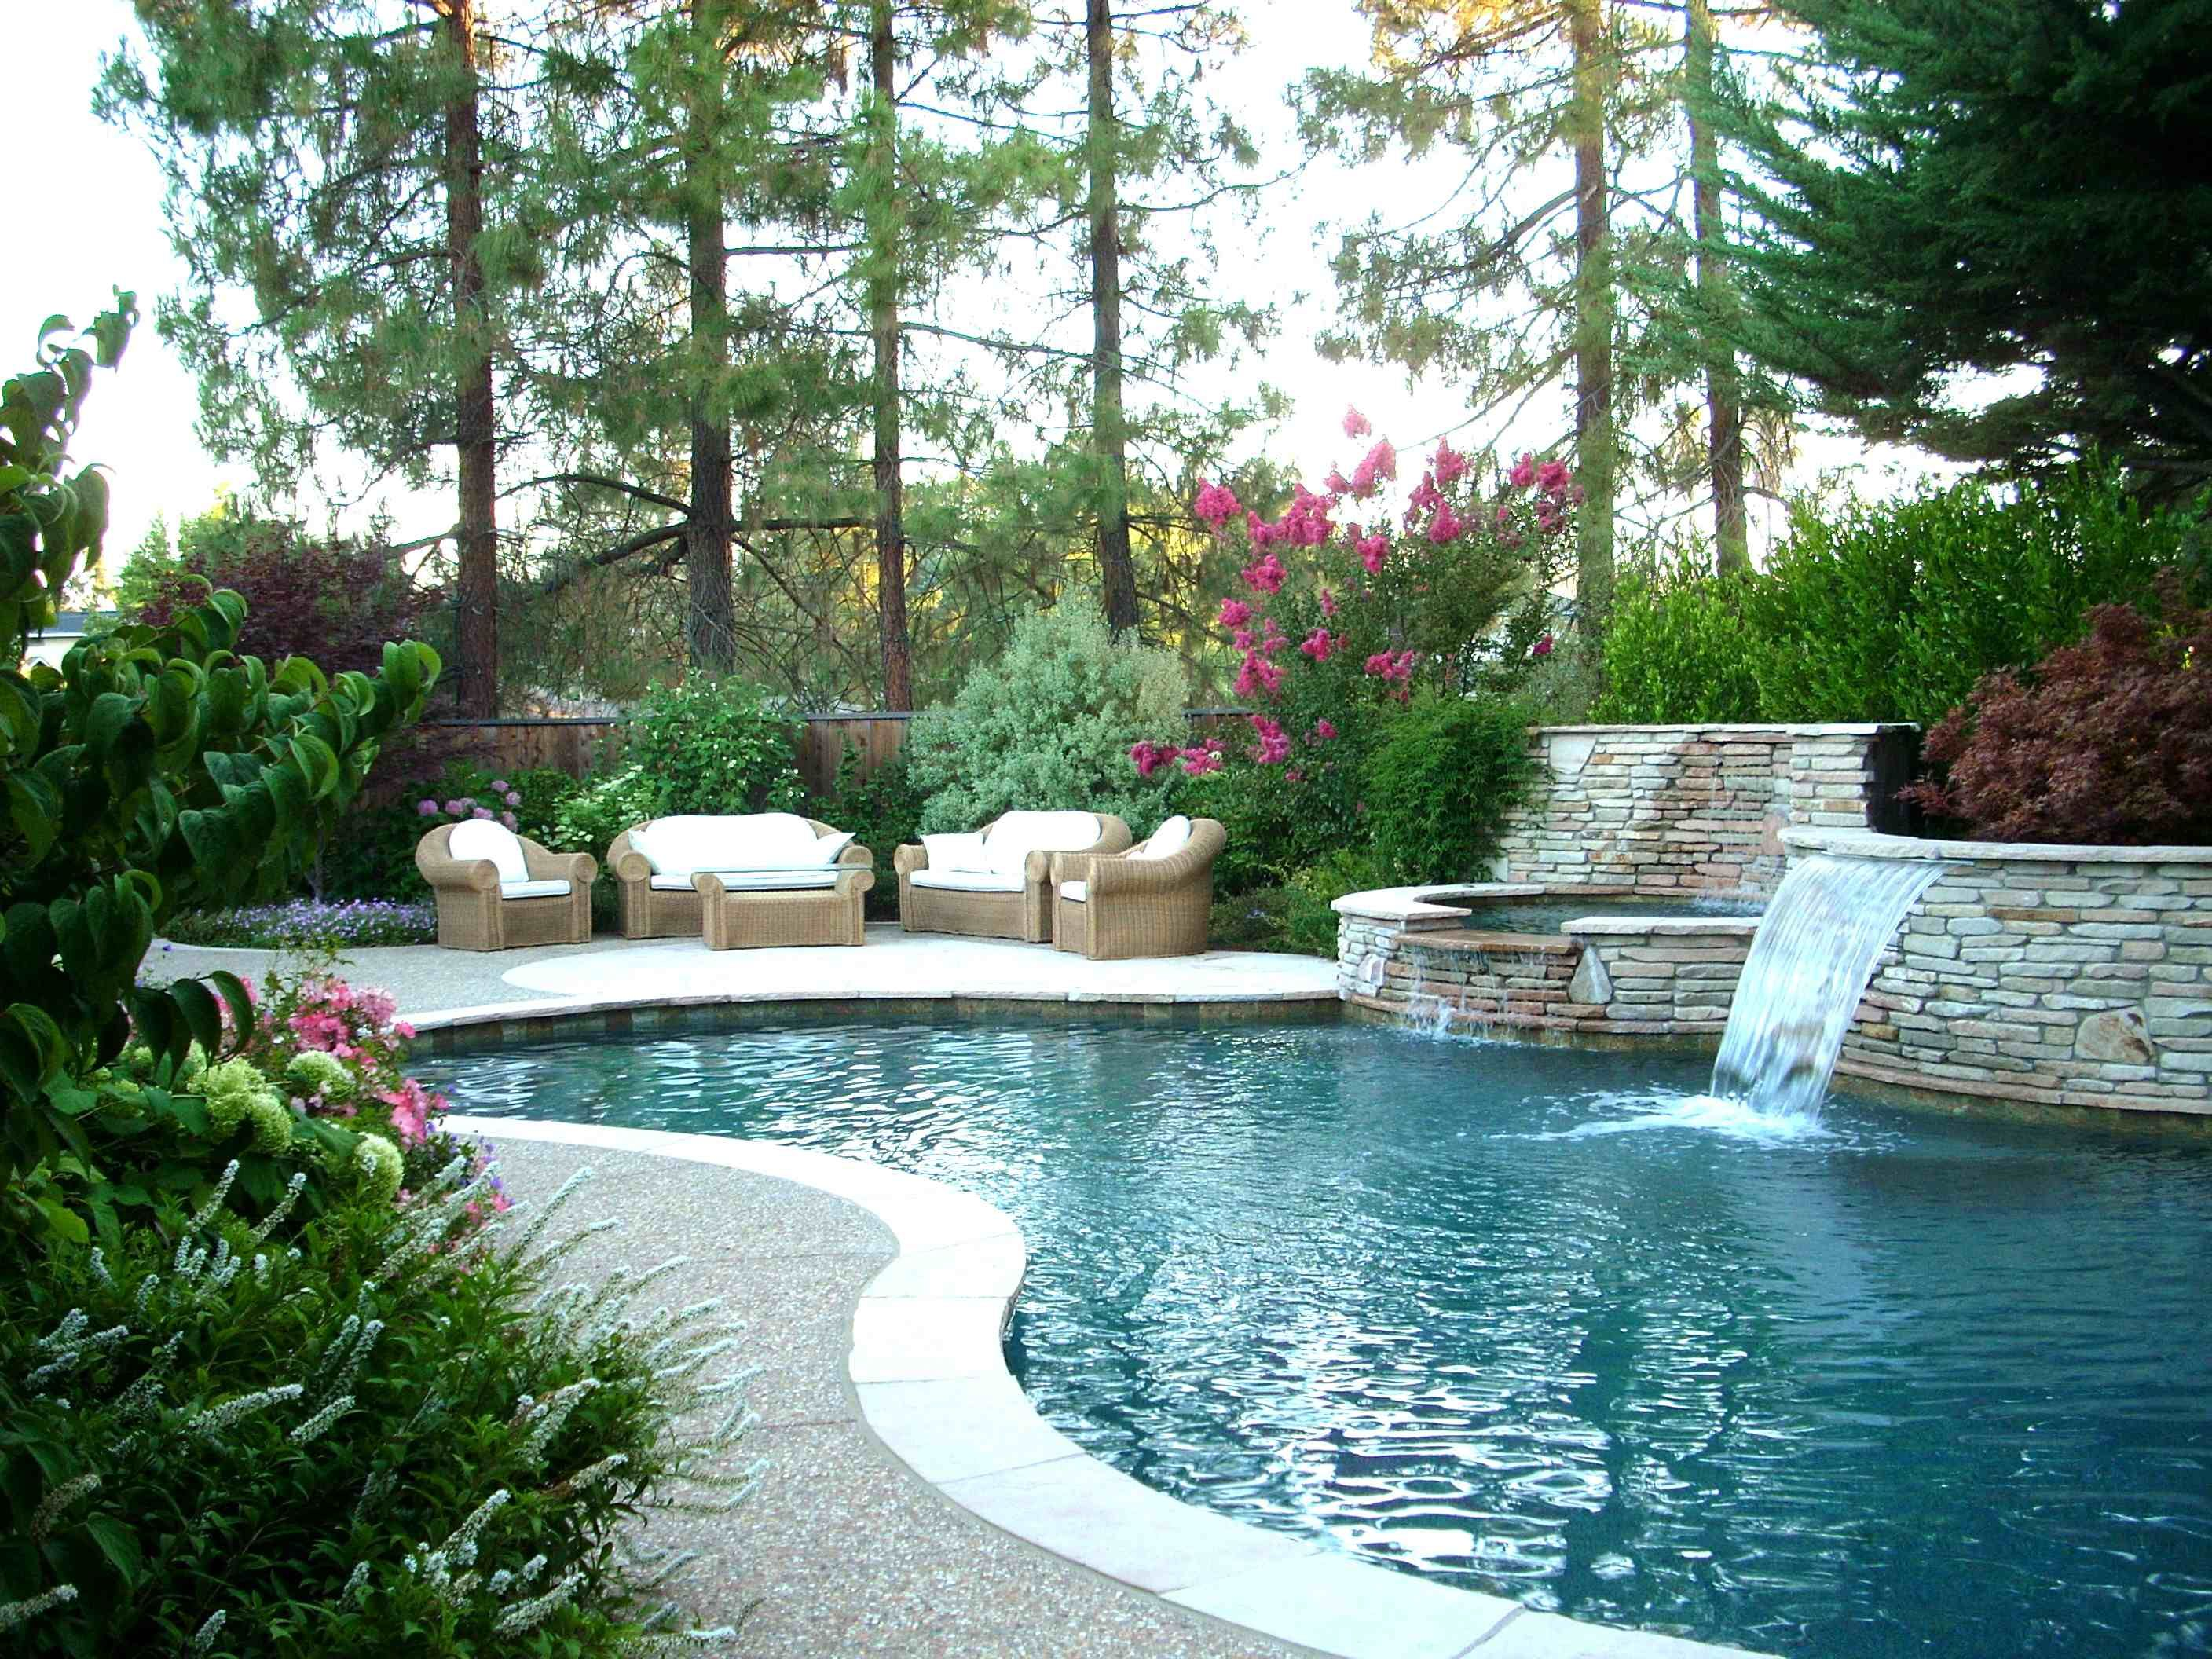 Landscaped pool pictures landscape design ideas for for Landscape design ideas